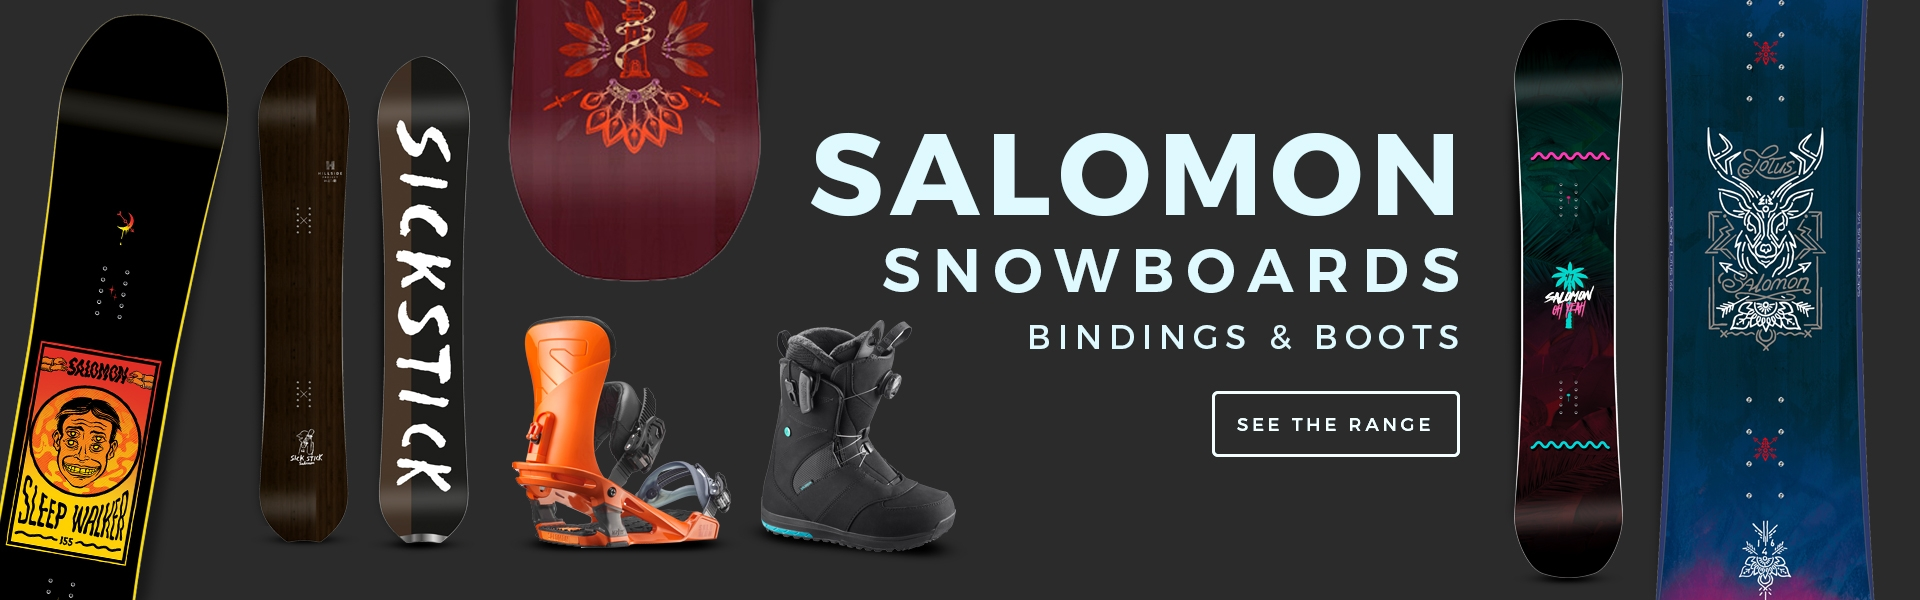 Salomon Snowboards, Salomon Snowboard Boots, Salomon Snowboard Bindings